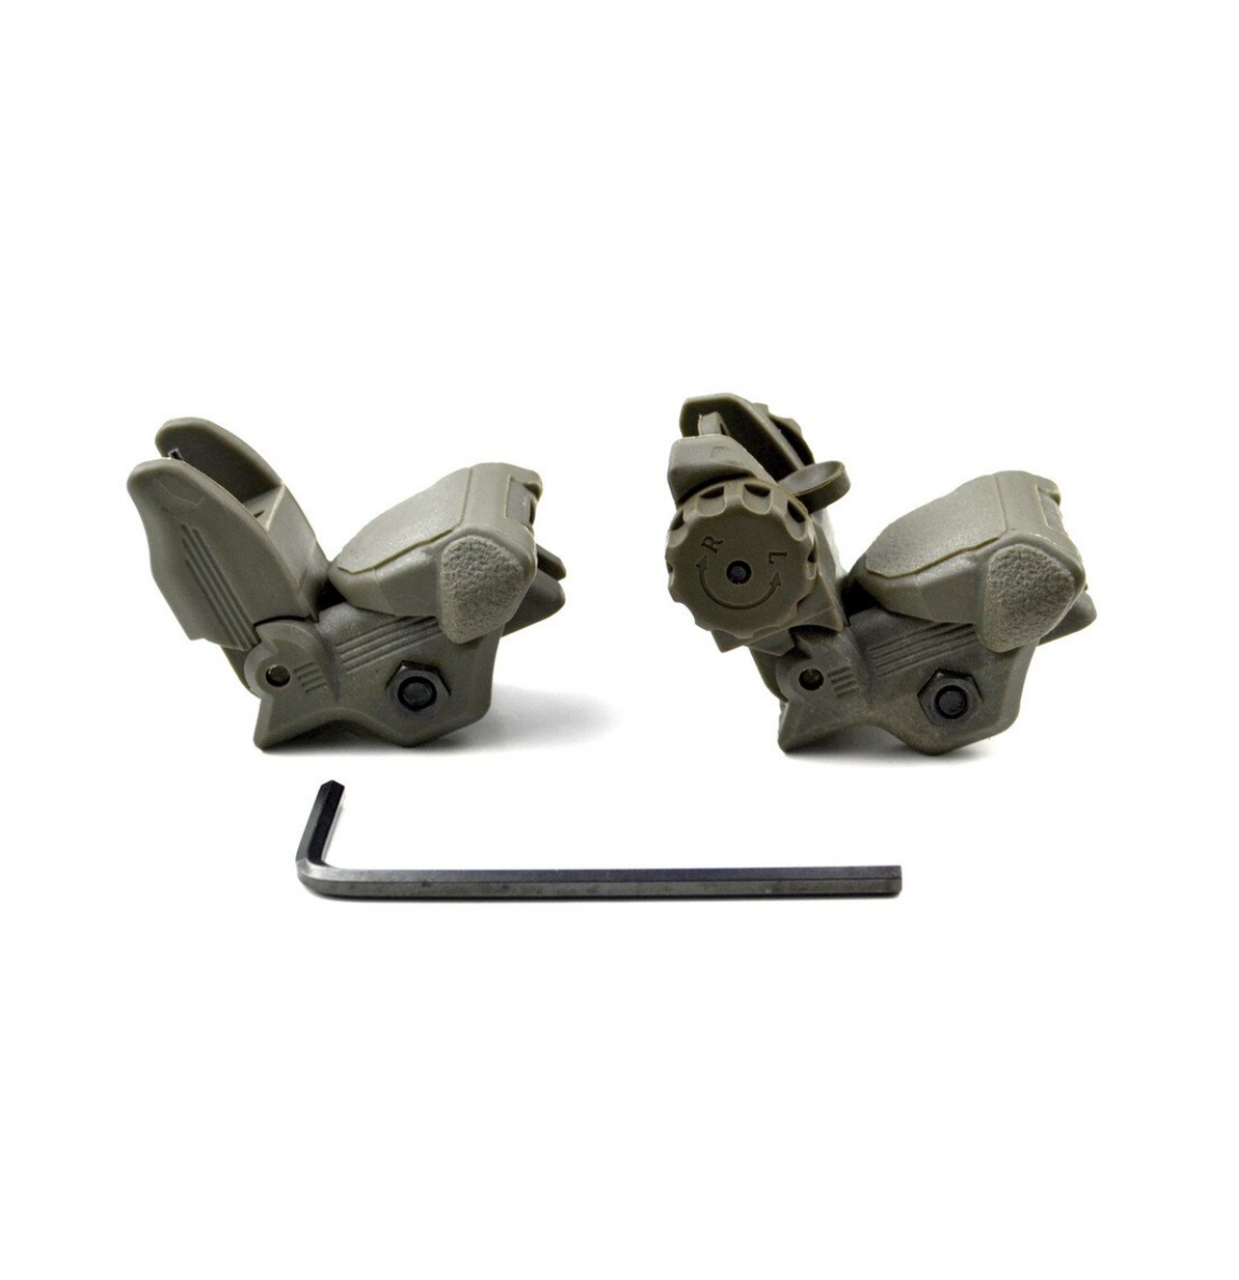 Polymer Front and Rear Flip Up Back Up Sight Set